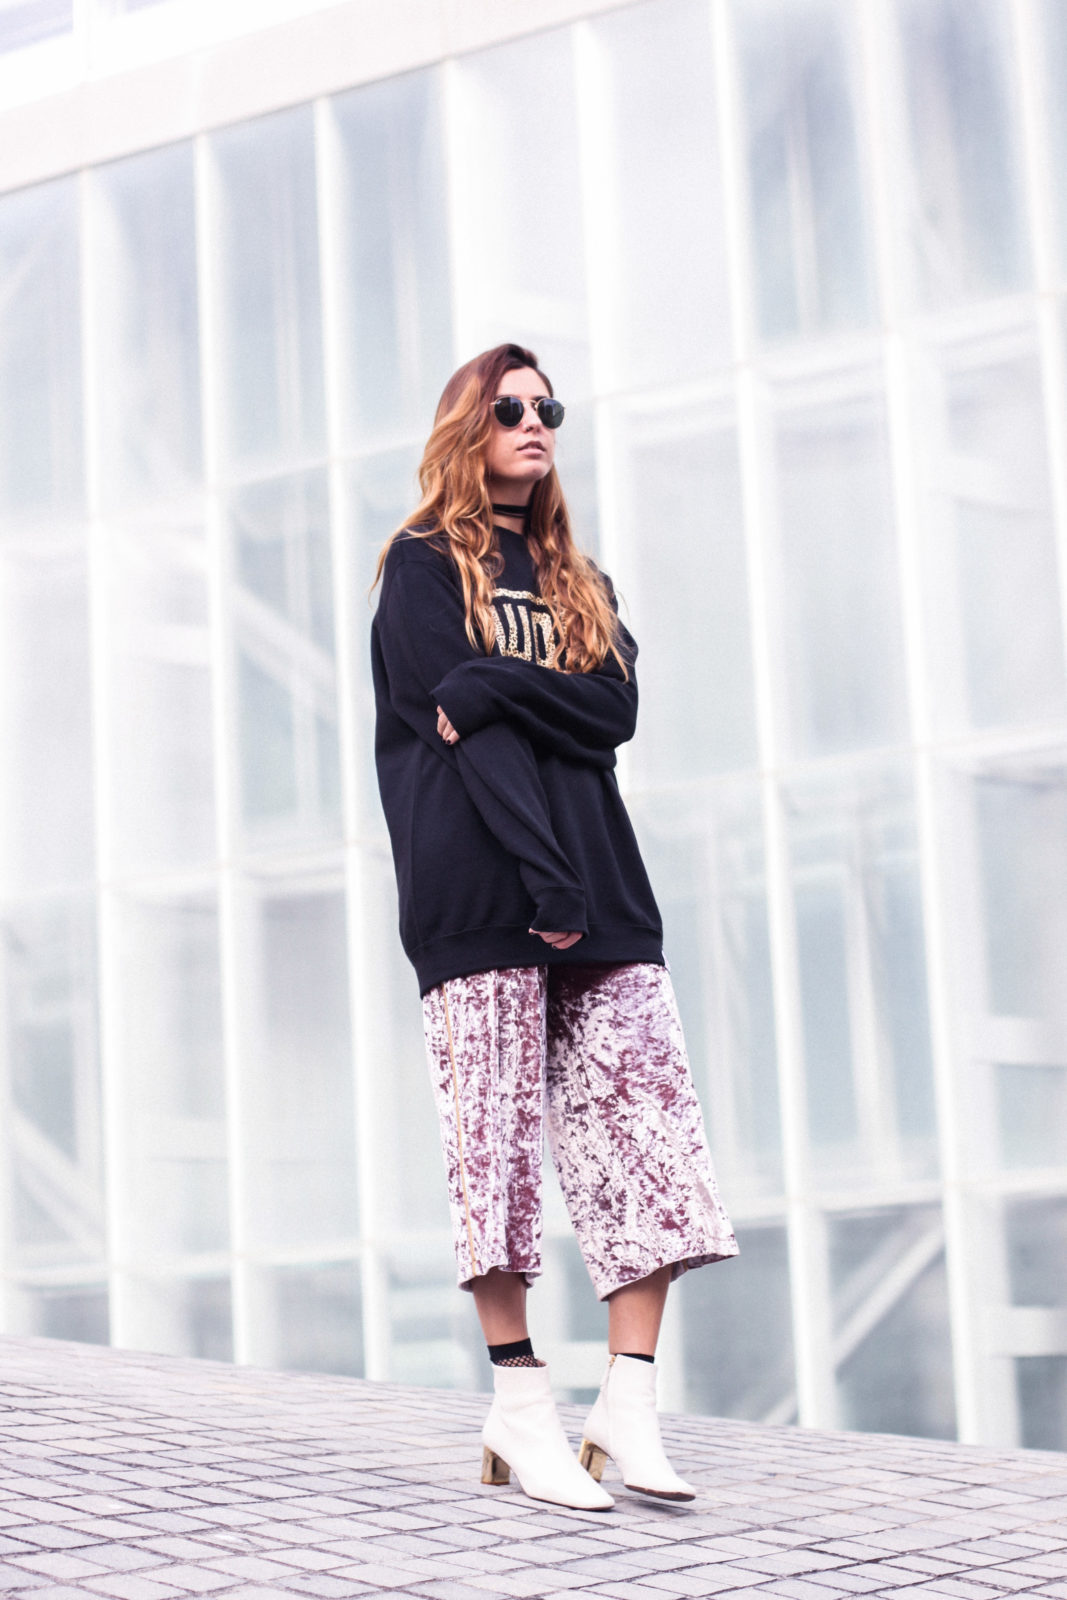 sudadera_woof_old_dogs_pantalones_terciopelo_rosa_botines_blancos_sweatshirt_oversize_choker_calcetines_rejilla_tendencias_2016_fall_trends_street_style_donkeycool-48